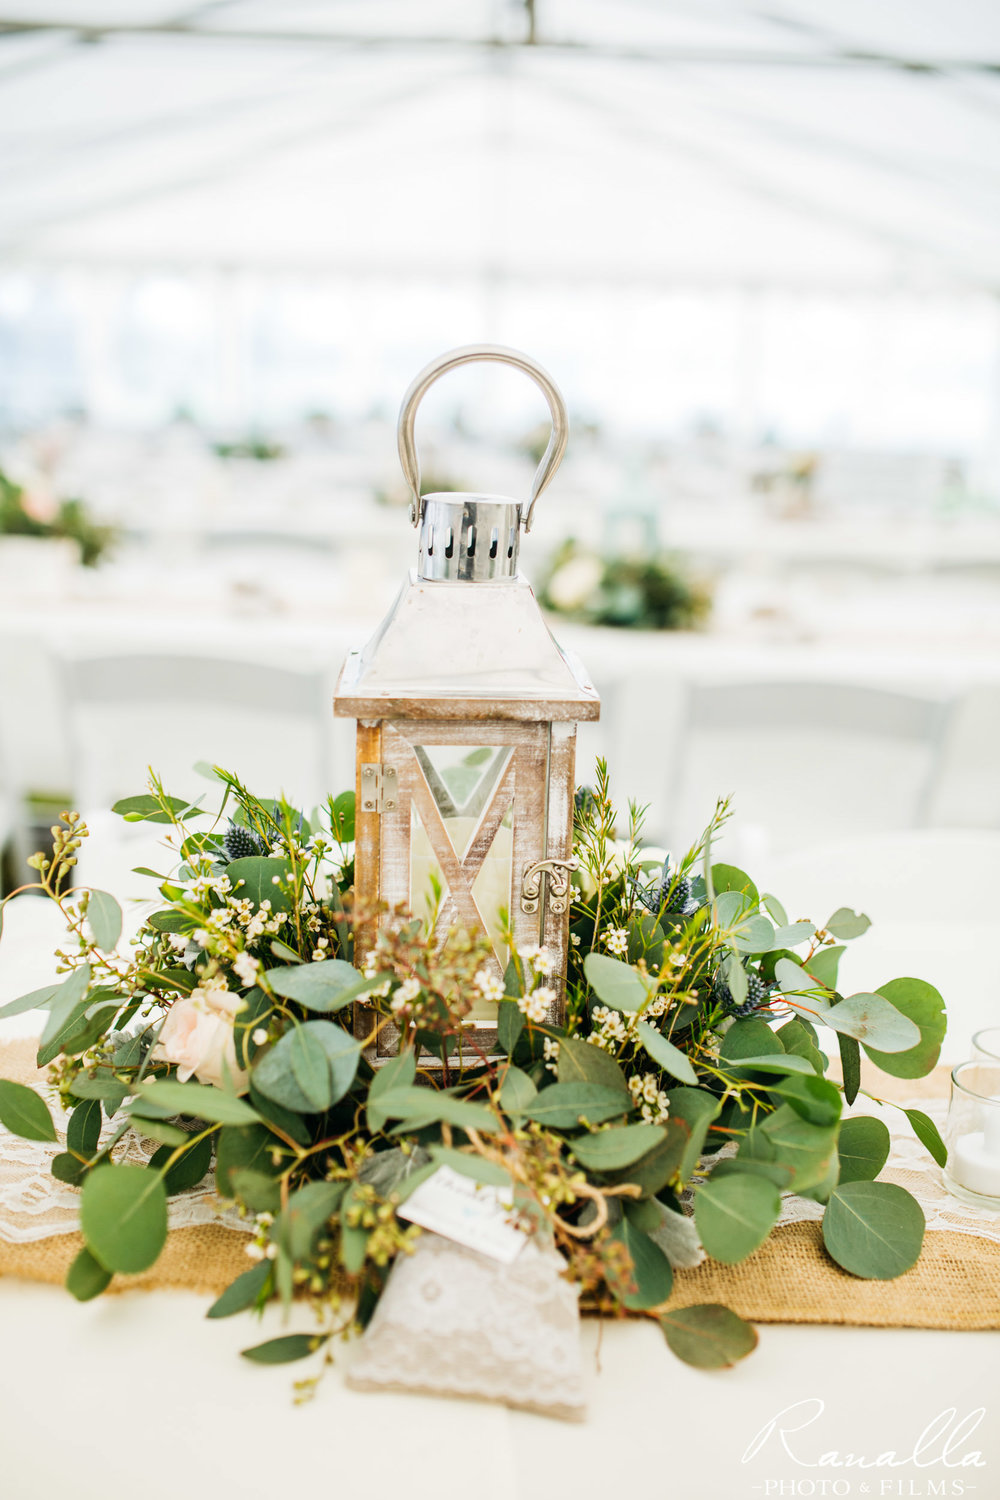 Chico Wedding Photography- Country Chic Lantern Centerpiece- Patrick Ranch Wedding Photos- Ranalla Photo & Films